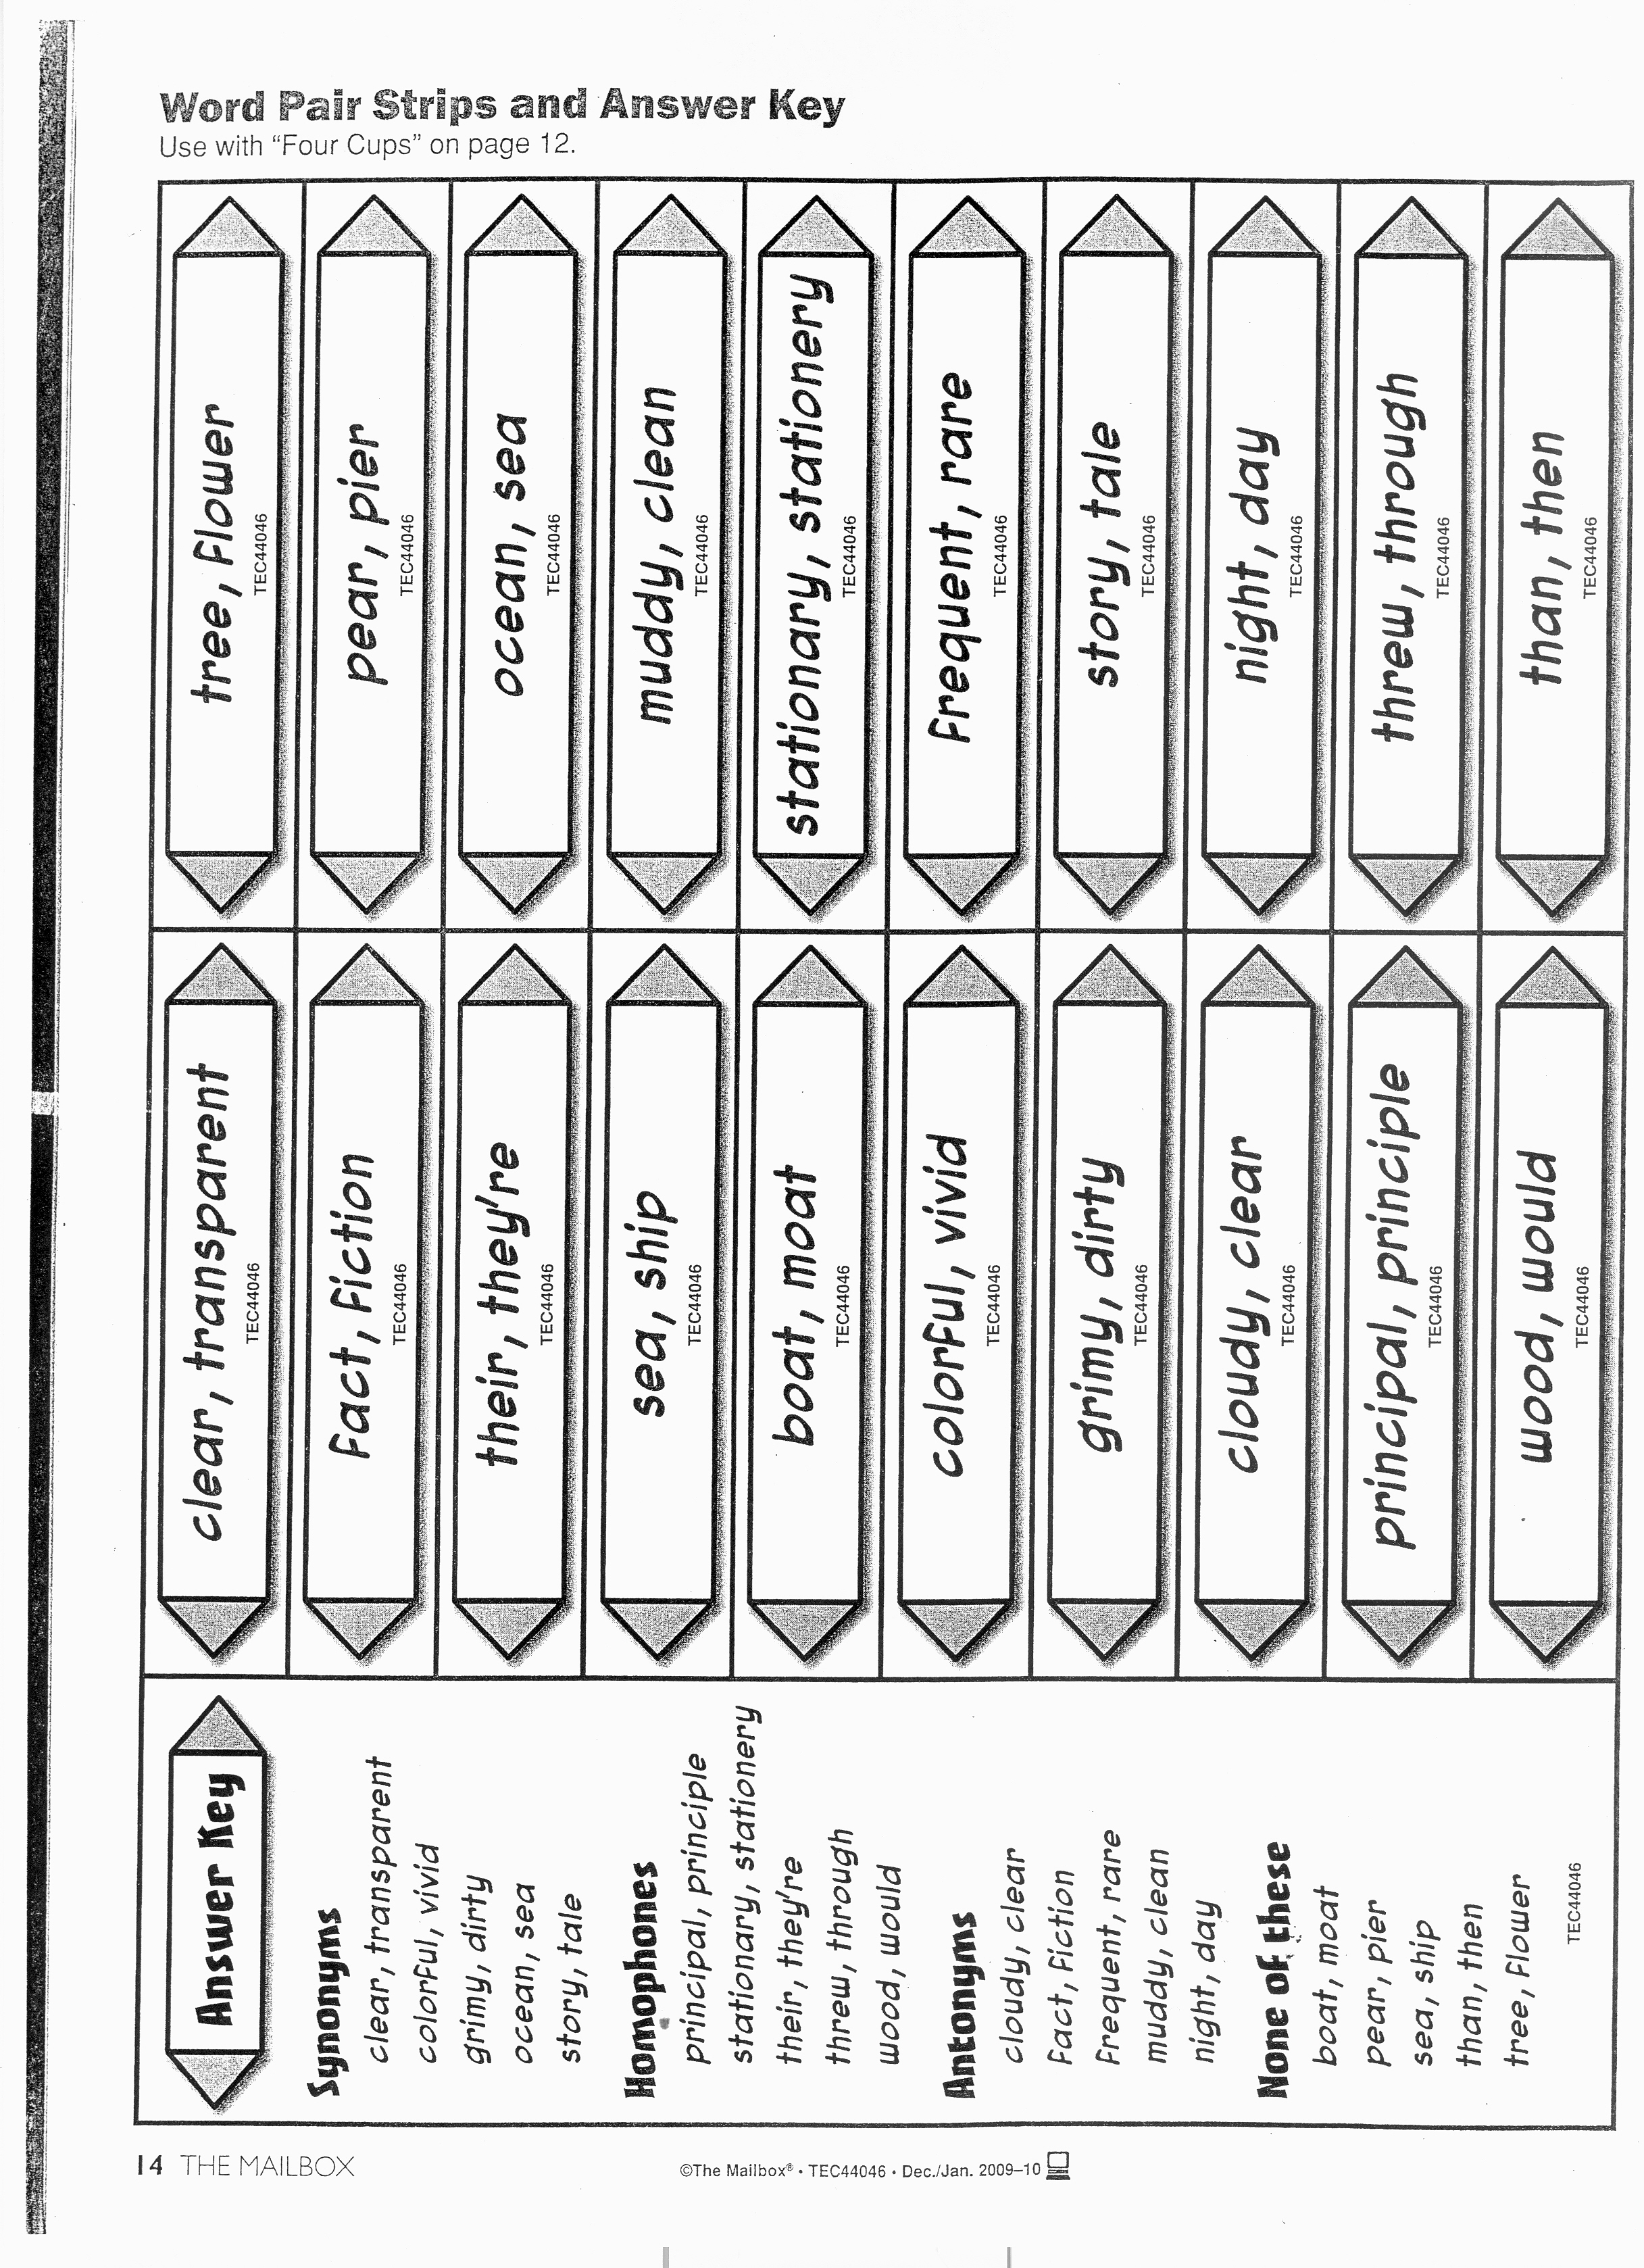 6th Grade Language Arts Worksheets With Answer Key